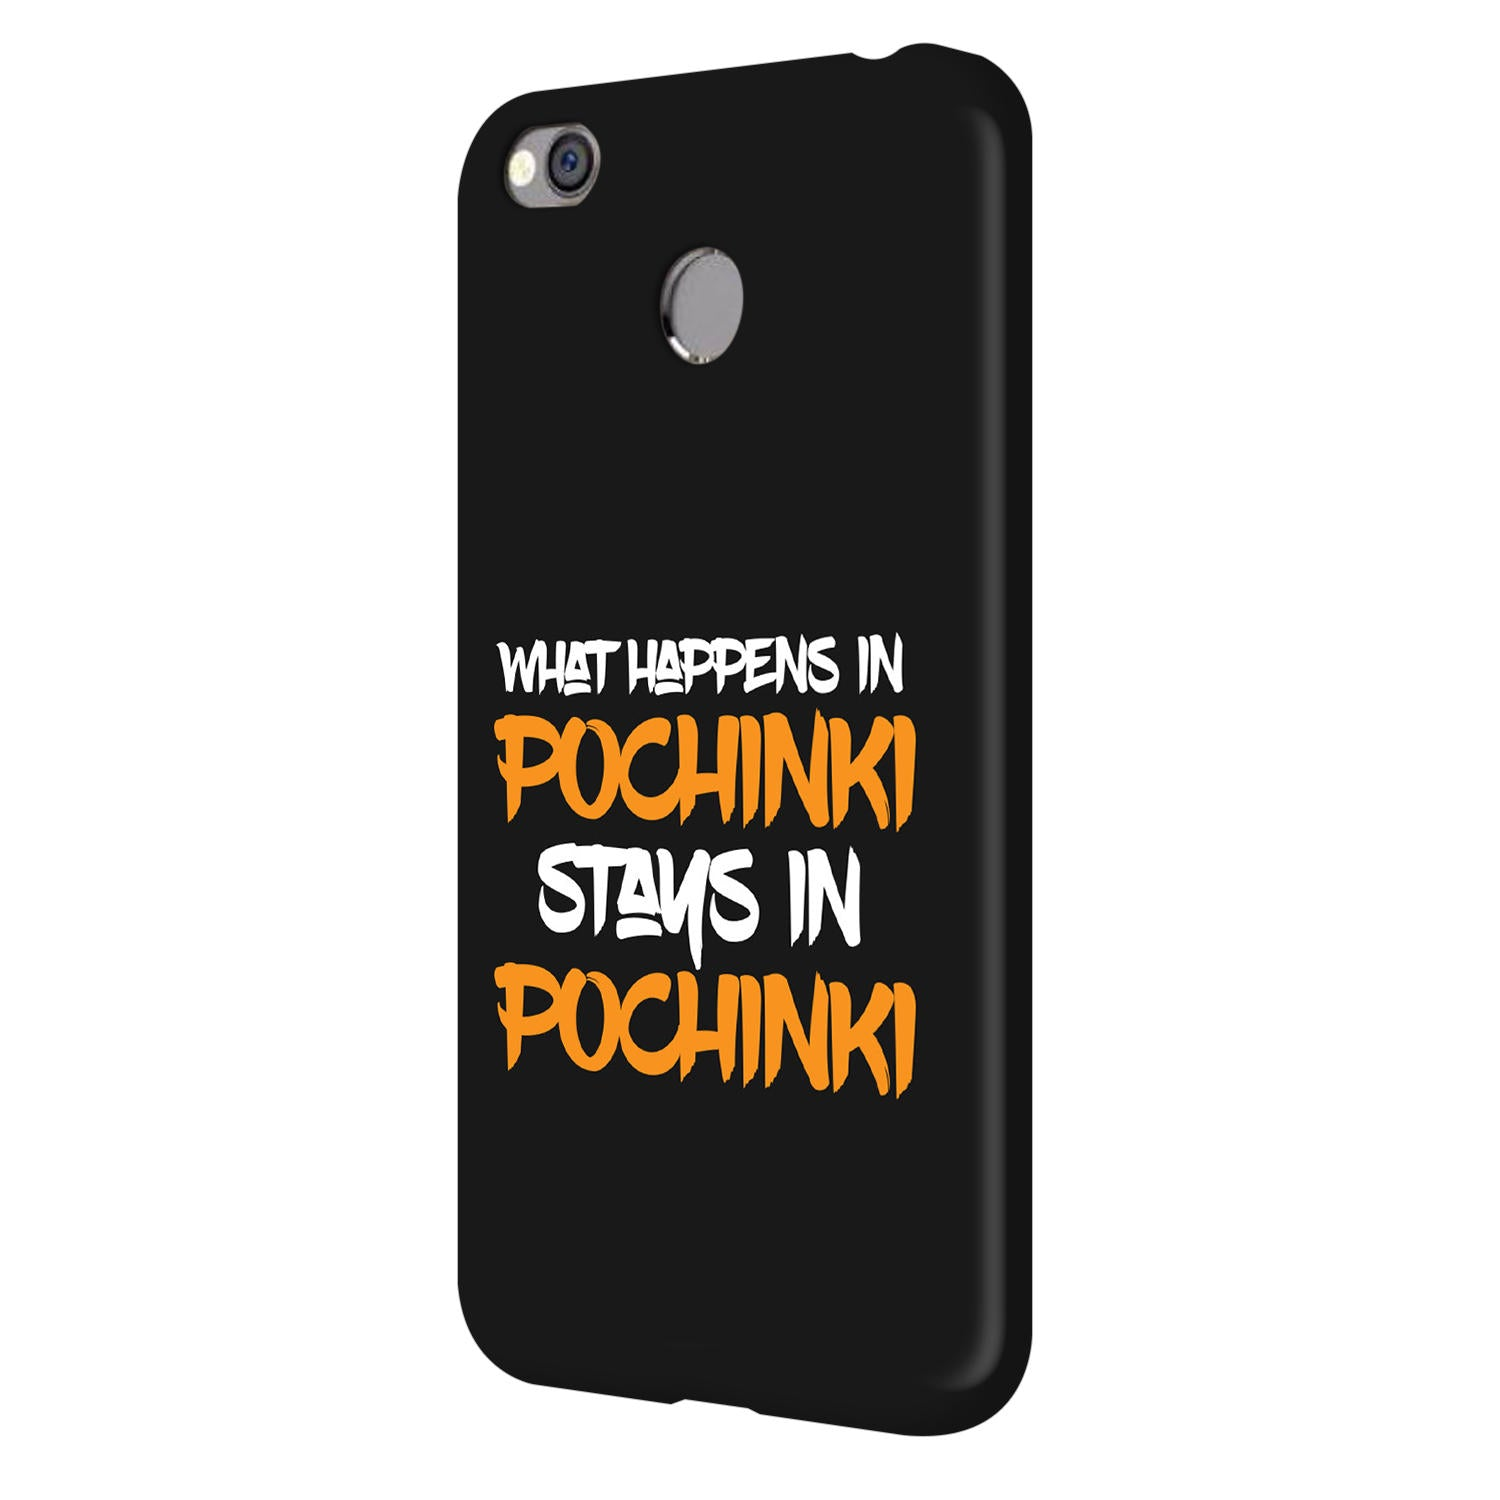 Pochinki Stays In Pochinki Pub G Quote Vivo V7 Plus Mobile Cover Case - MADANYU